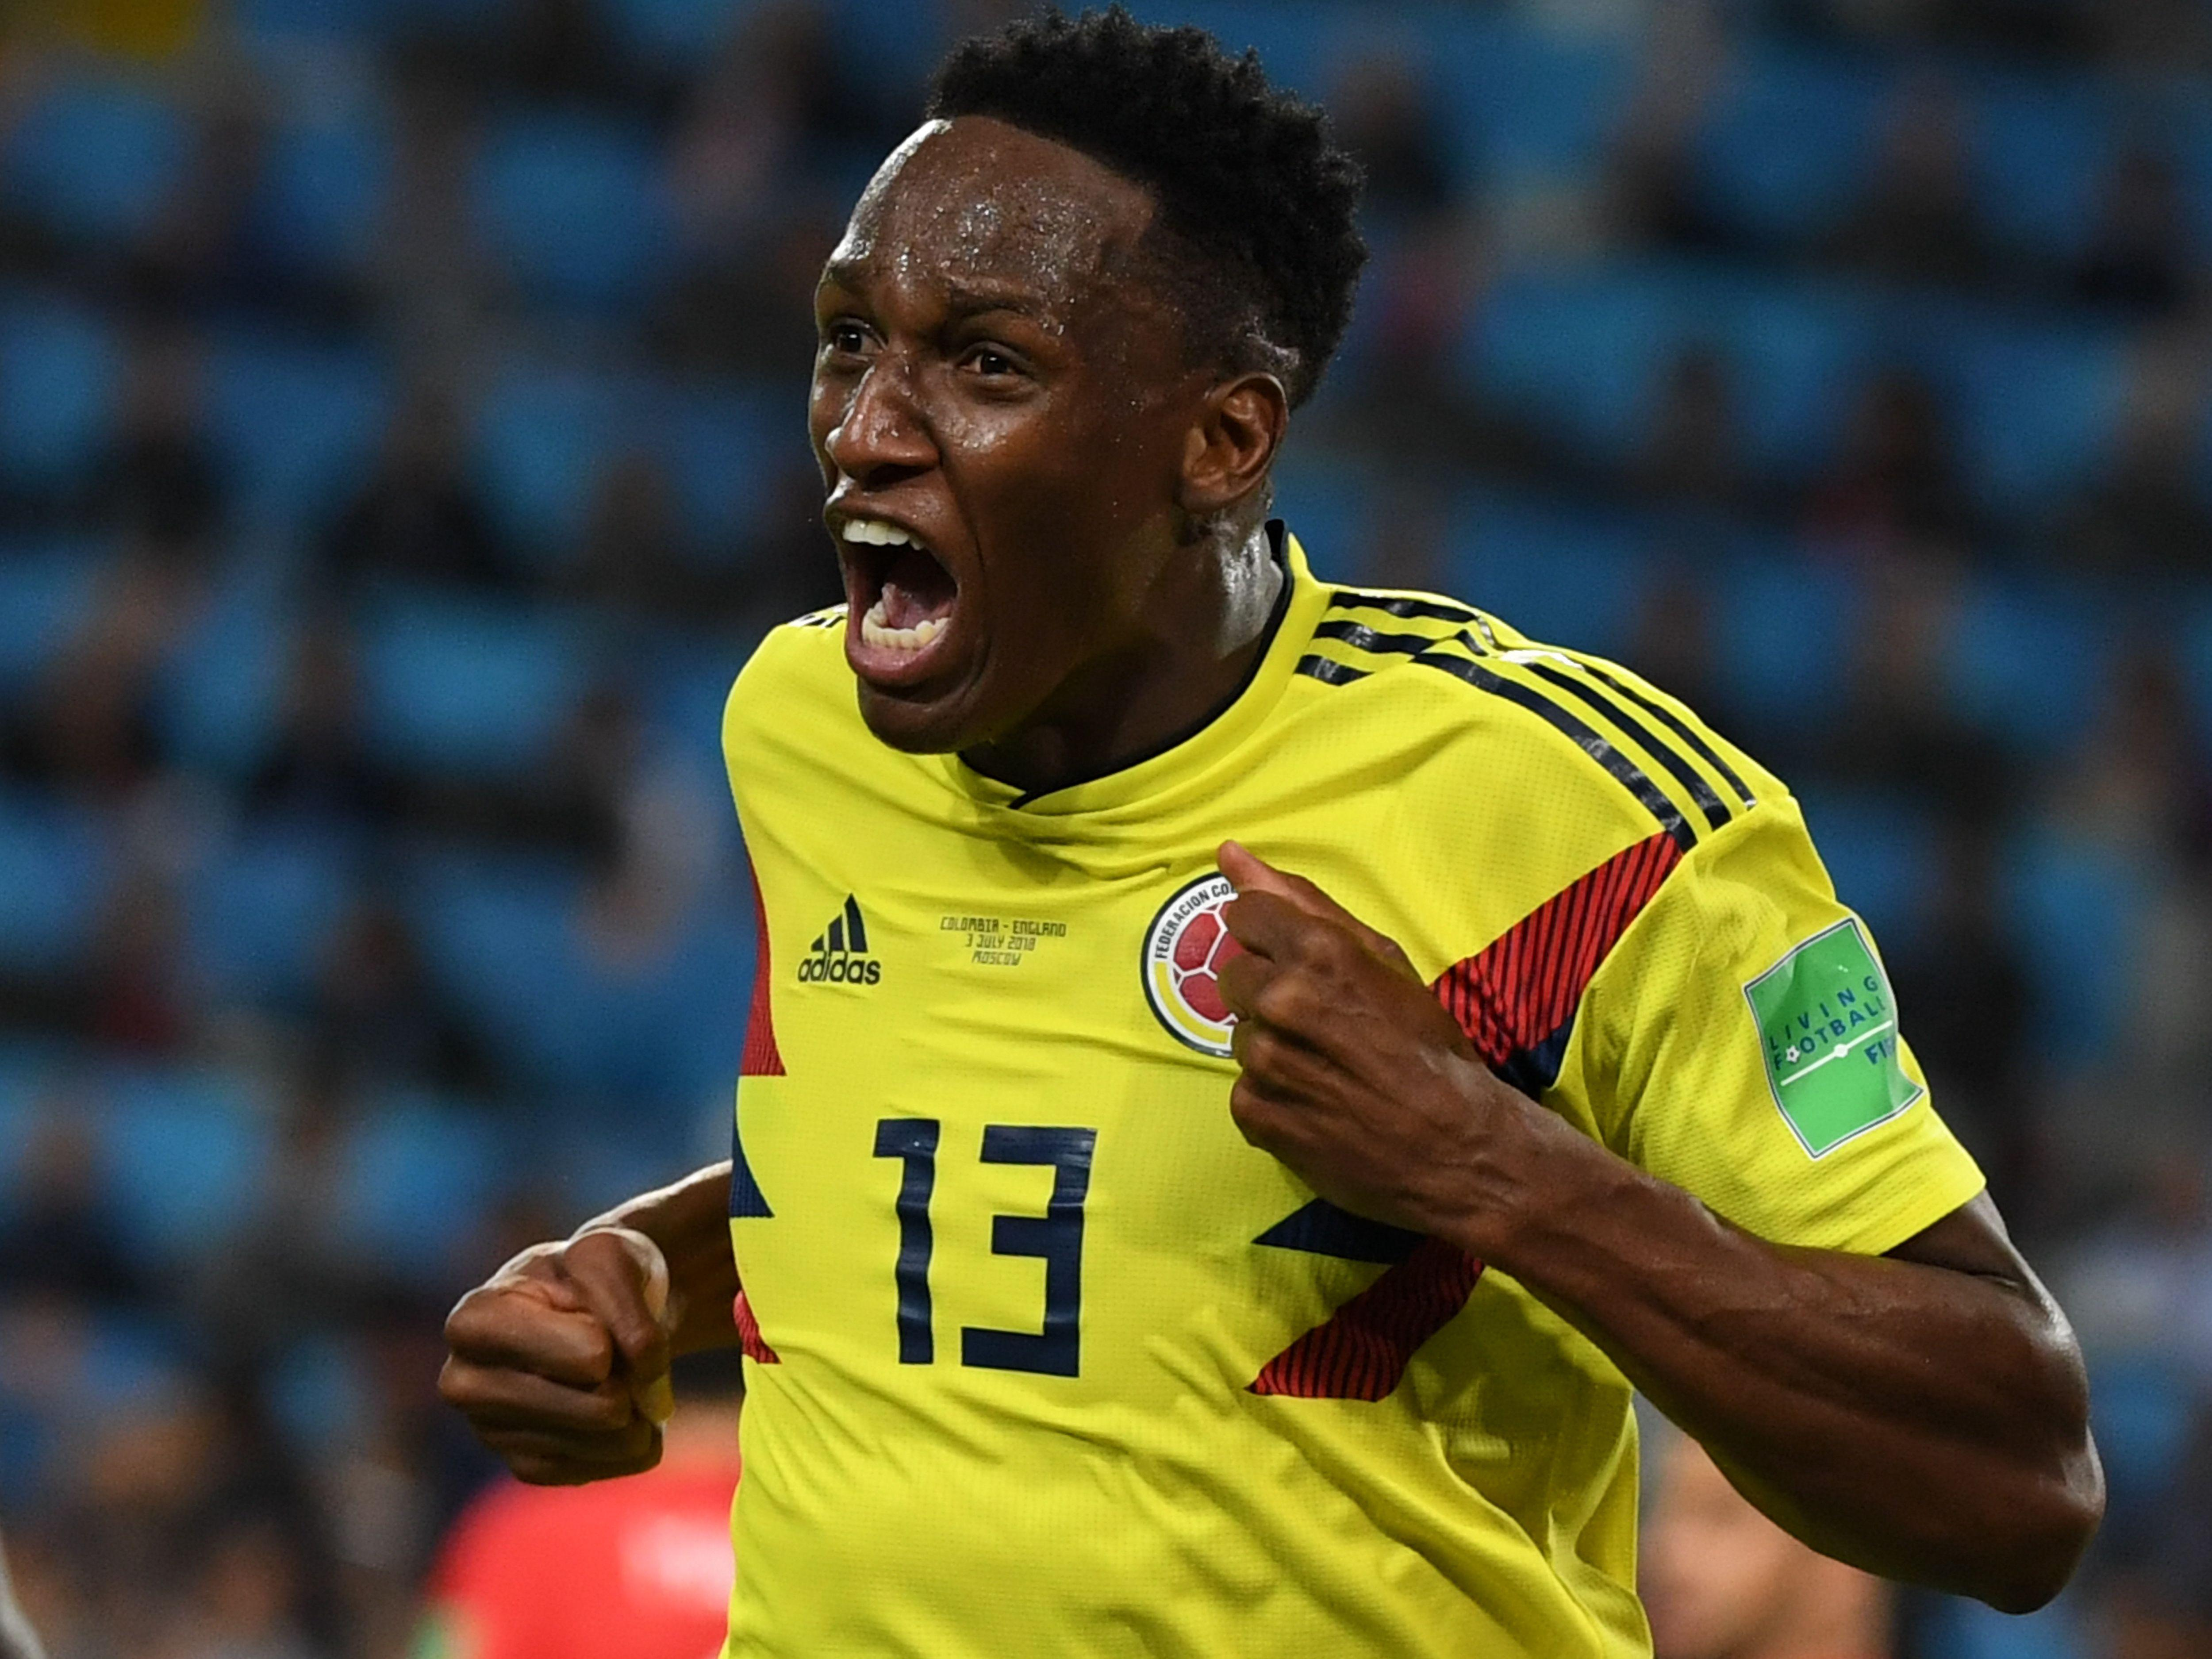 Yerry Mina starred for Colombia in this summer's World Cup and could be lighting up the Premier League next season